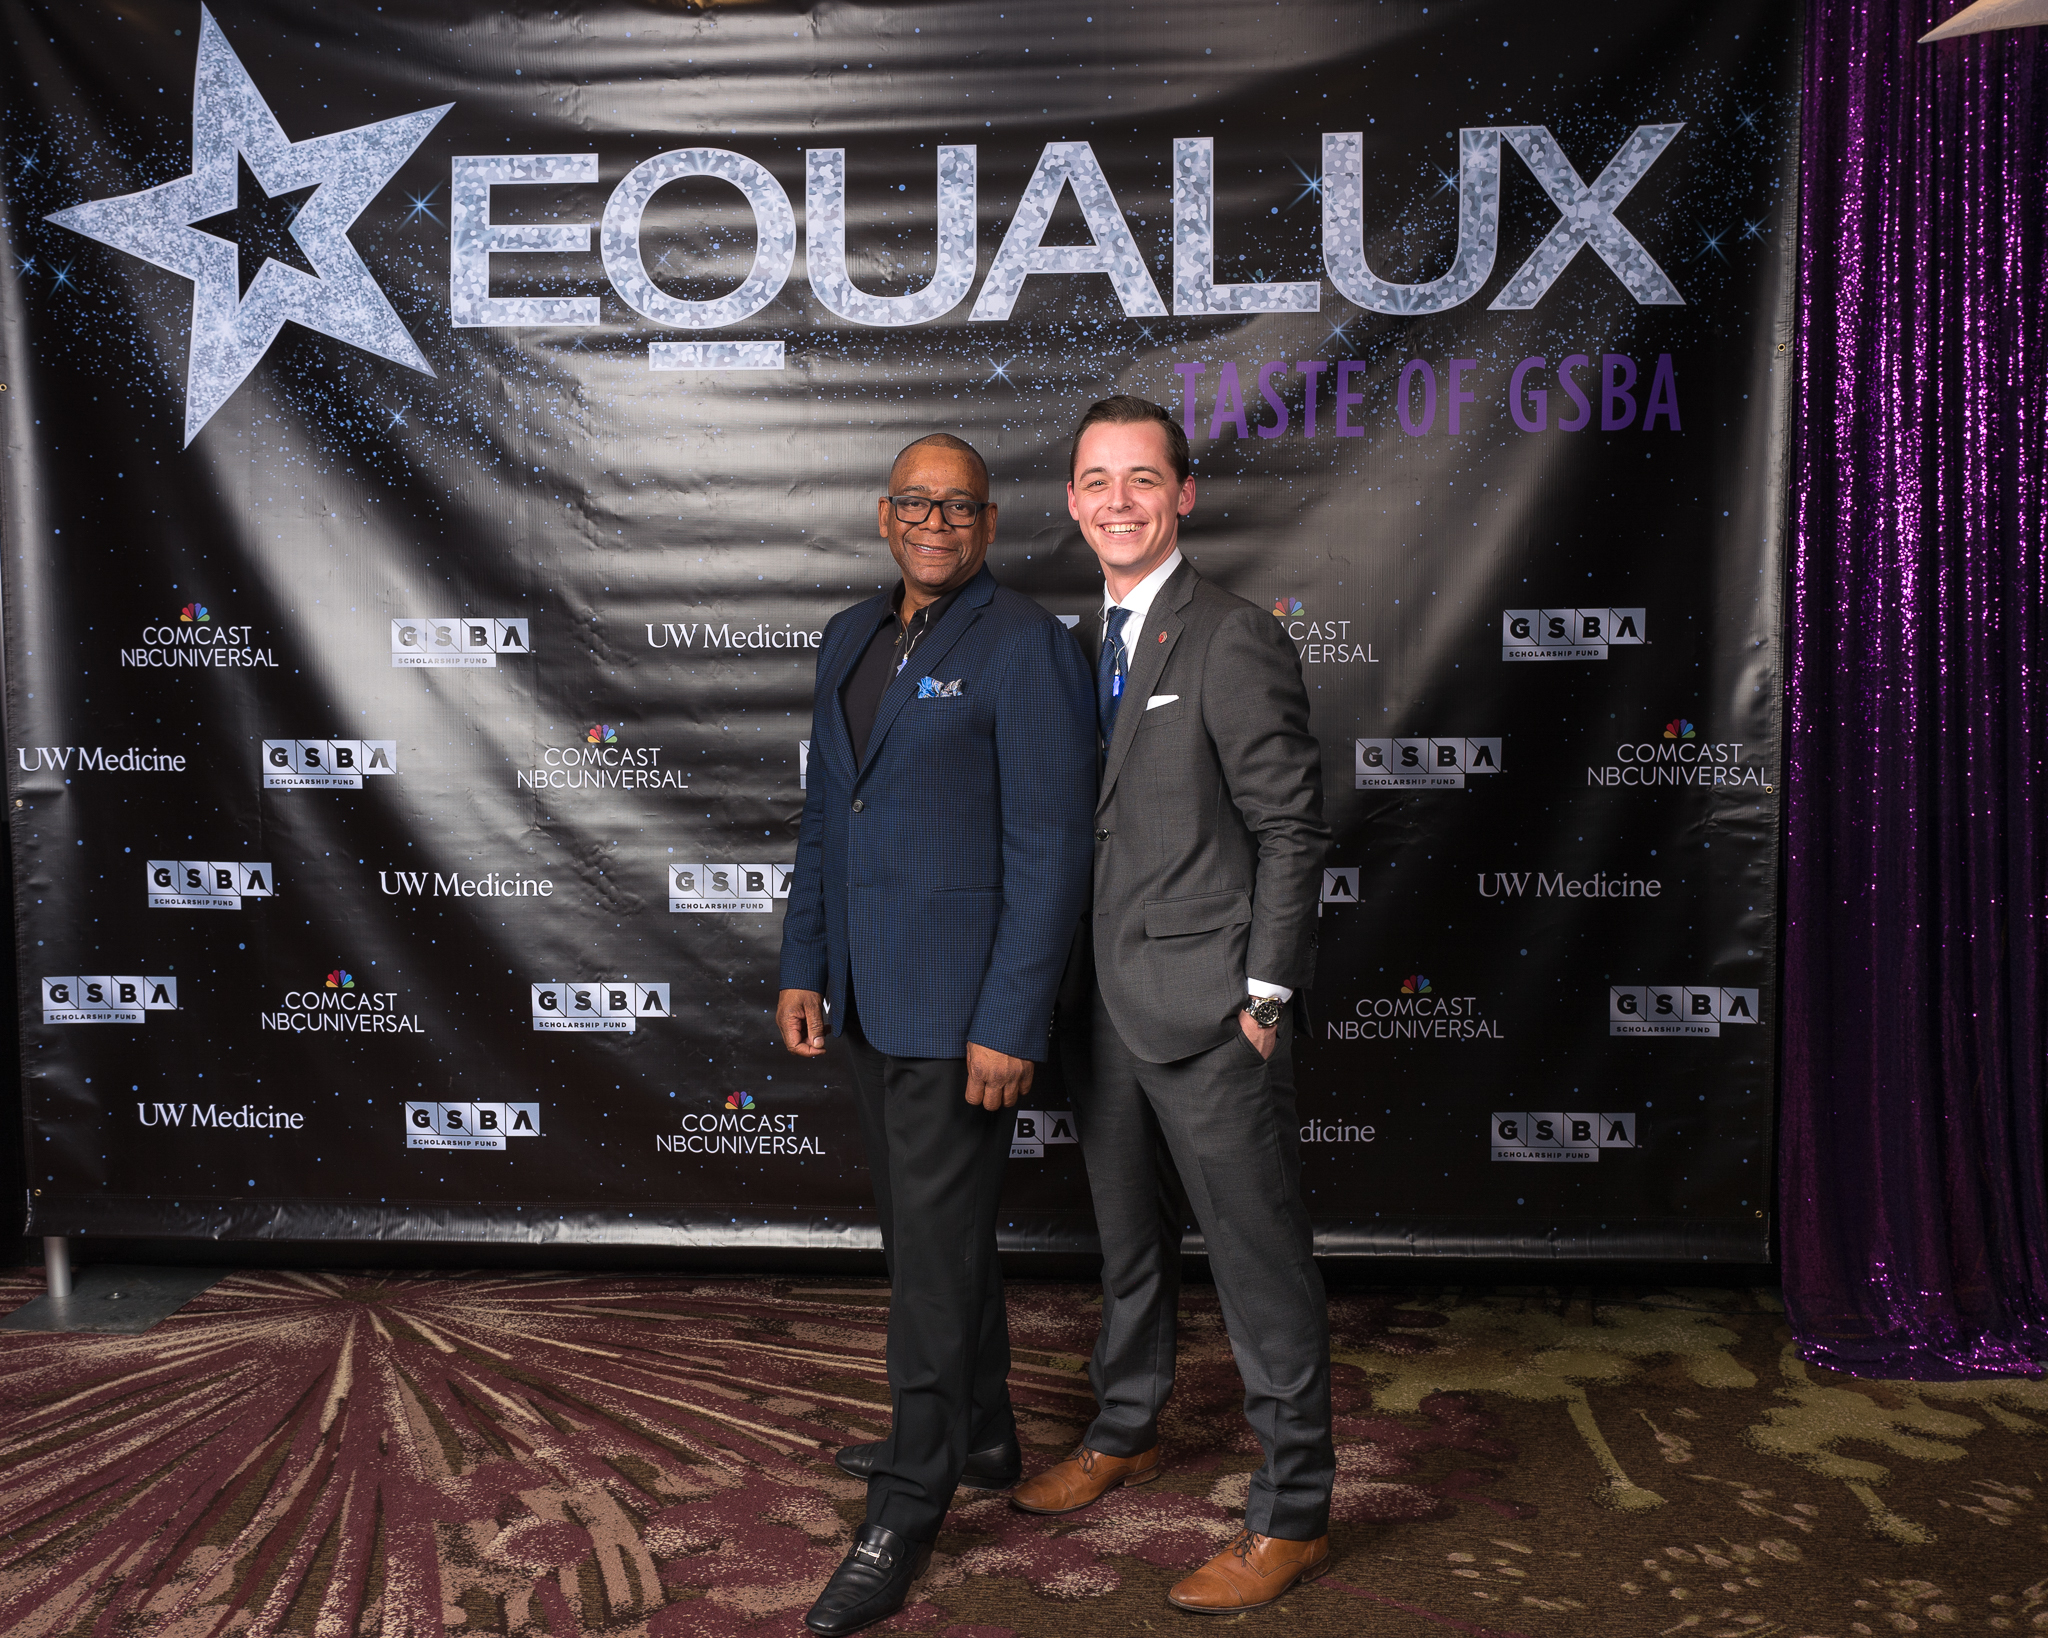 111718_GSBA EQUALUX at The Westin Seattle (Credit- Nate Gowdy)-120.jpg